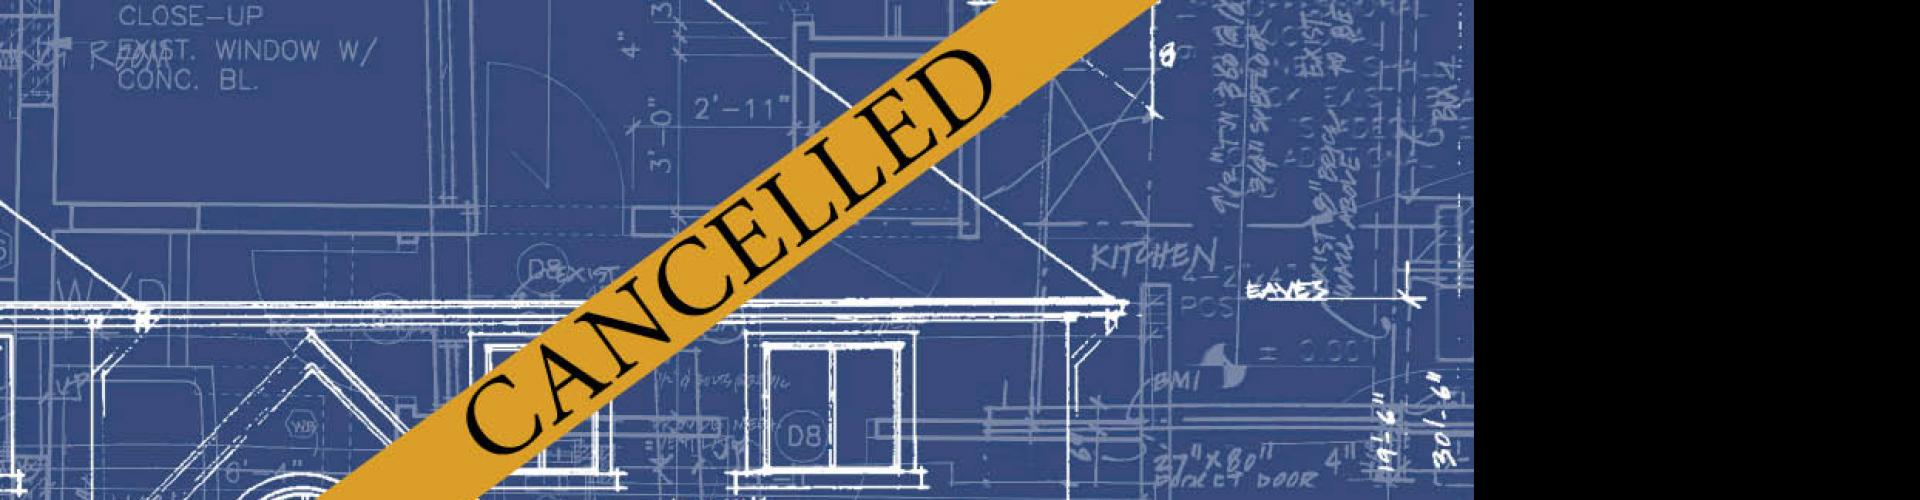 Blueprint of a Modern Colonial House with cancellation banner